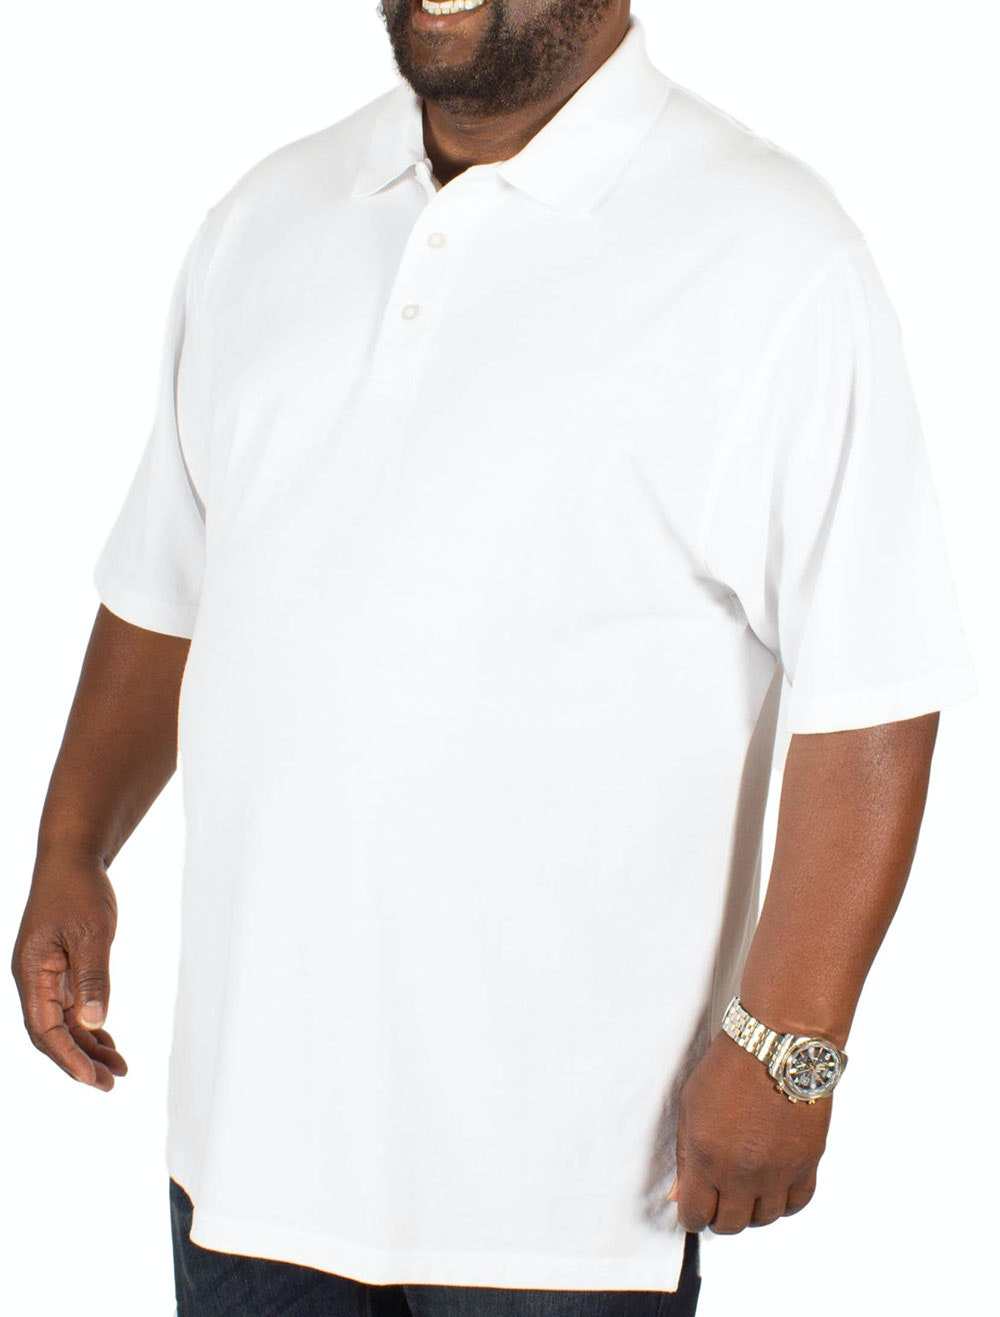 Bigdude Plain Polo Shirt White